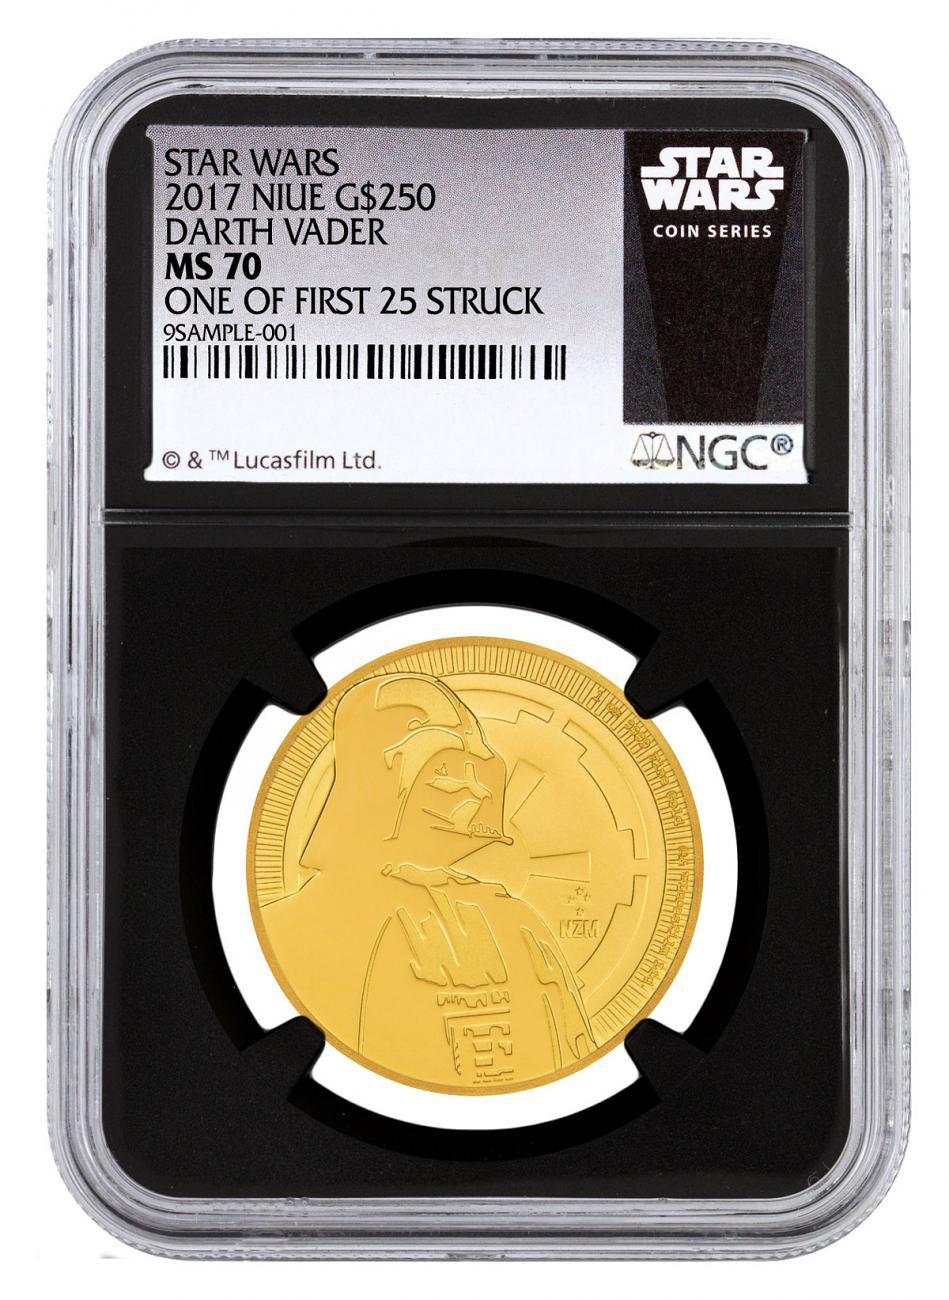 2017 Niue Star Wars Classic - Darth Vader 1 oz Gold $250 Coin NGC MS70 One of First 25 Struck Black Core Holder Exclusive Star Wars Label